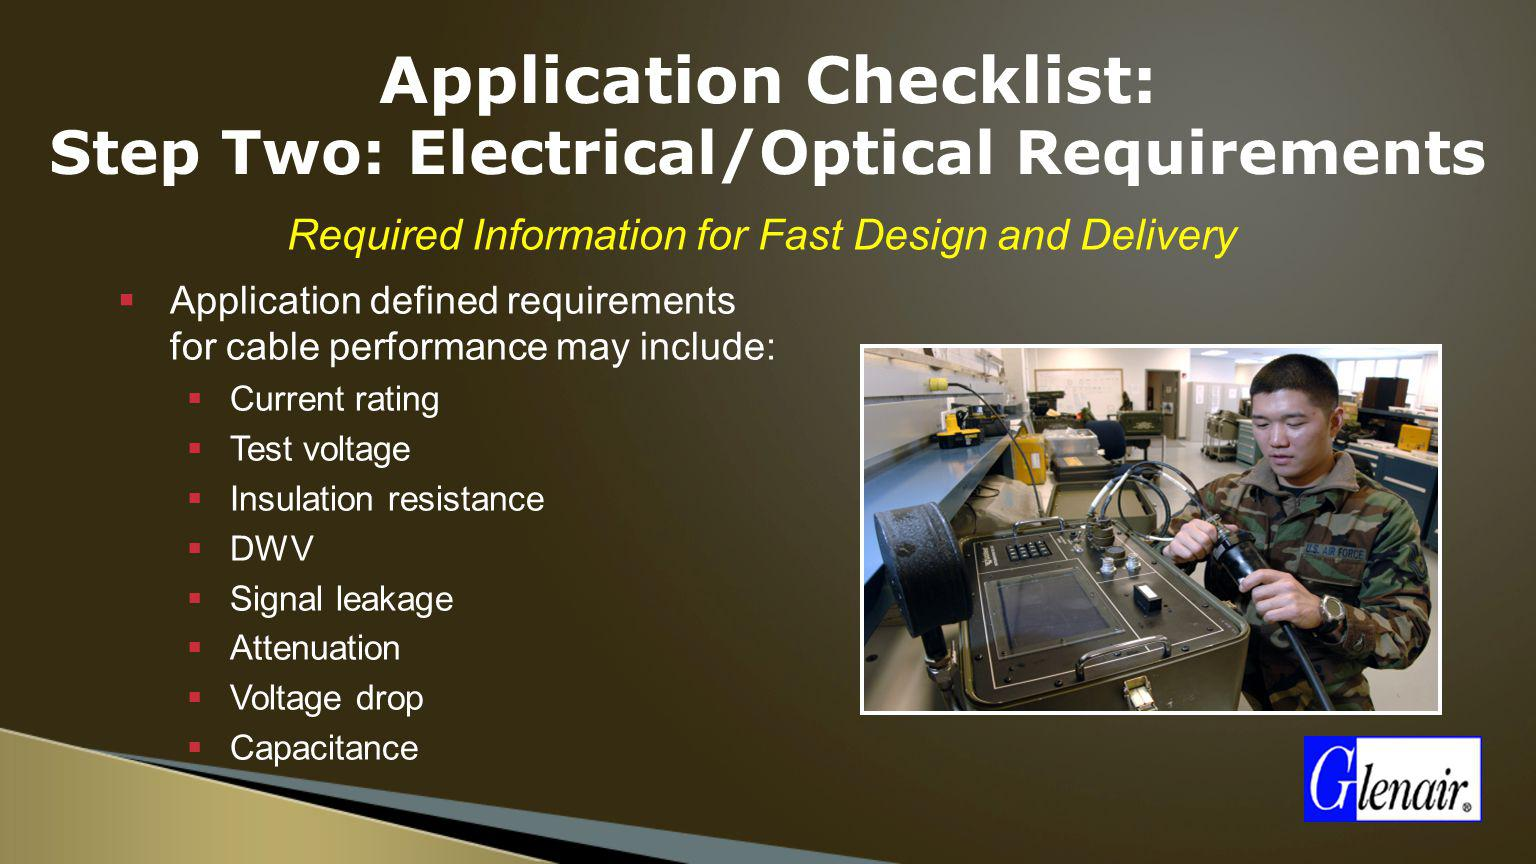 Application Checklist: Step Two: Electrical/Optical Requirements